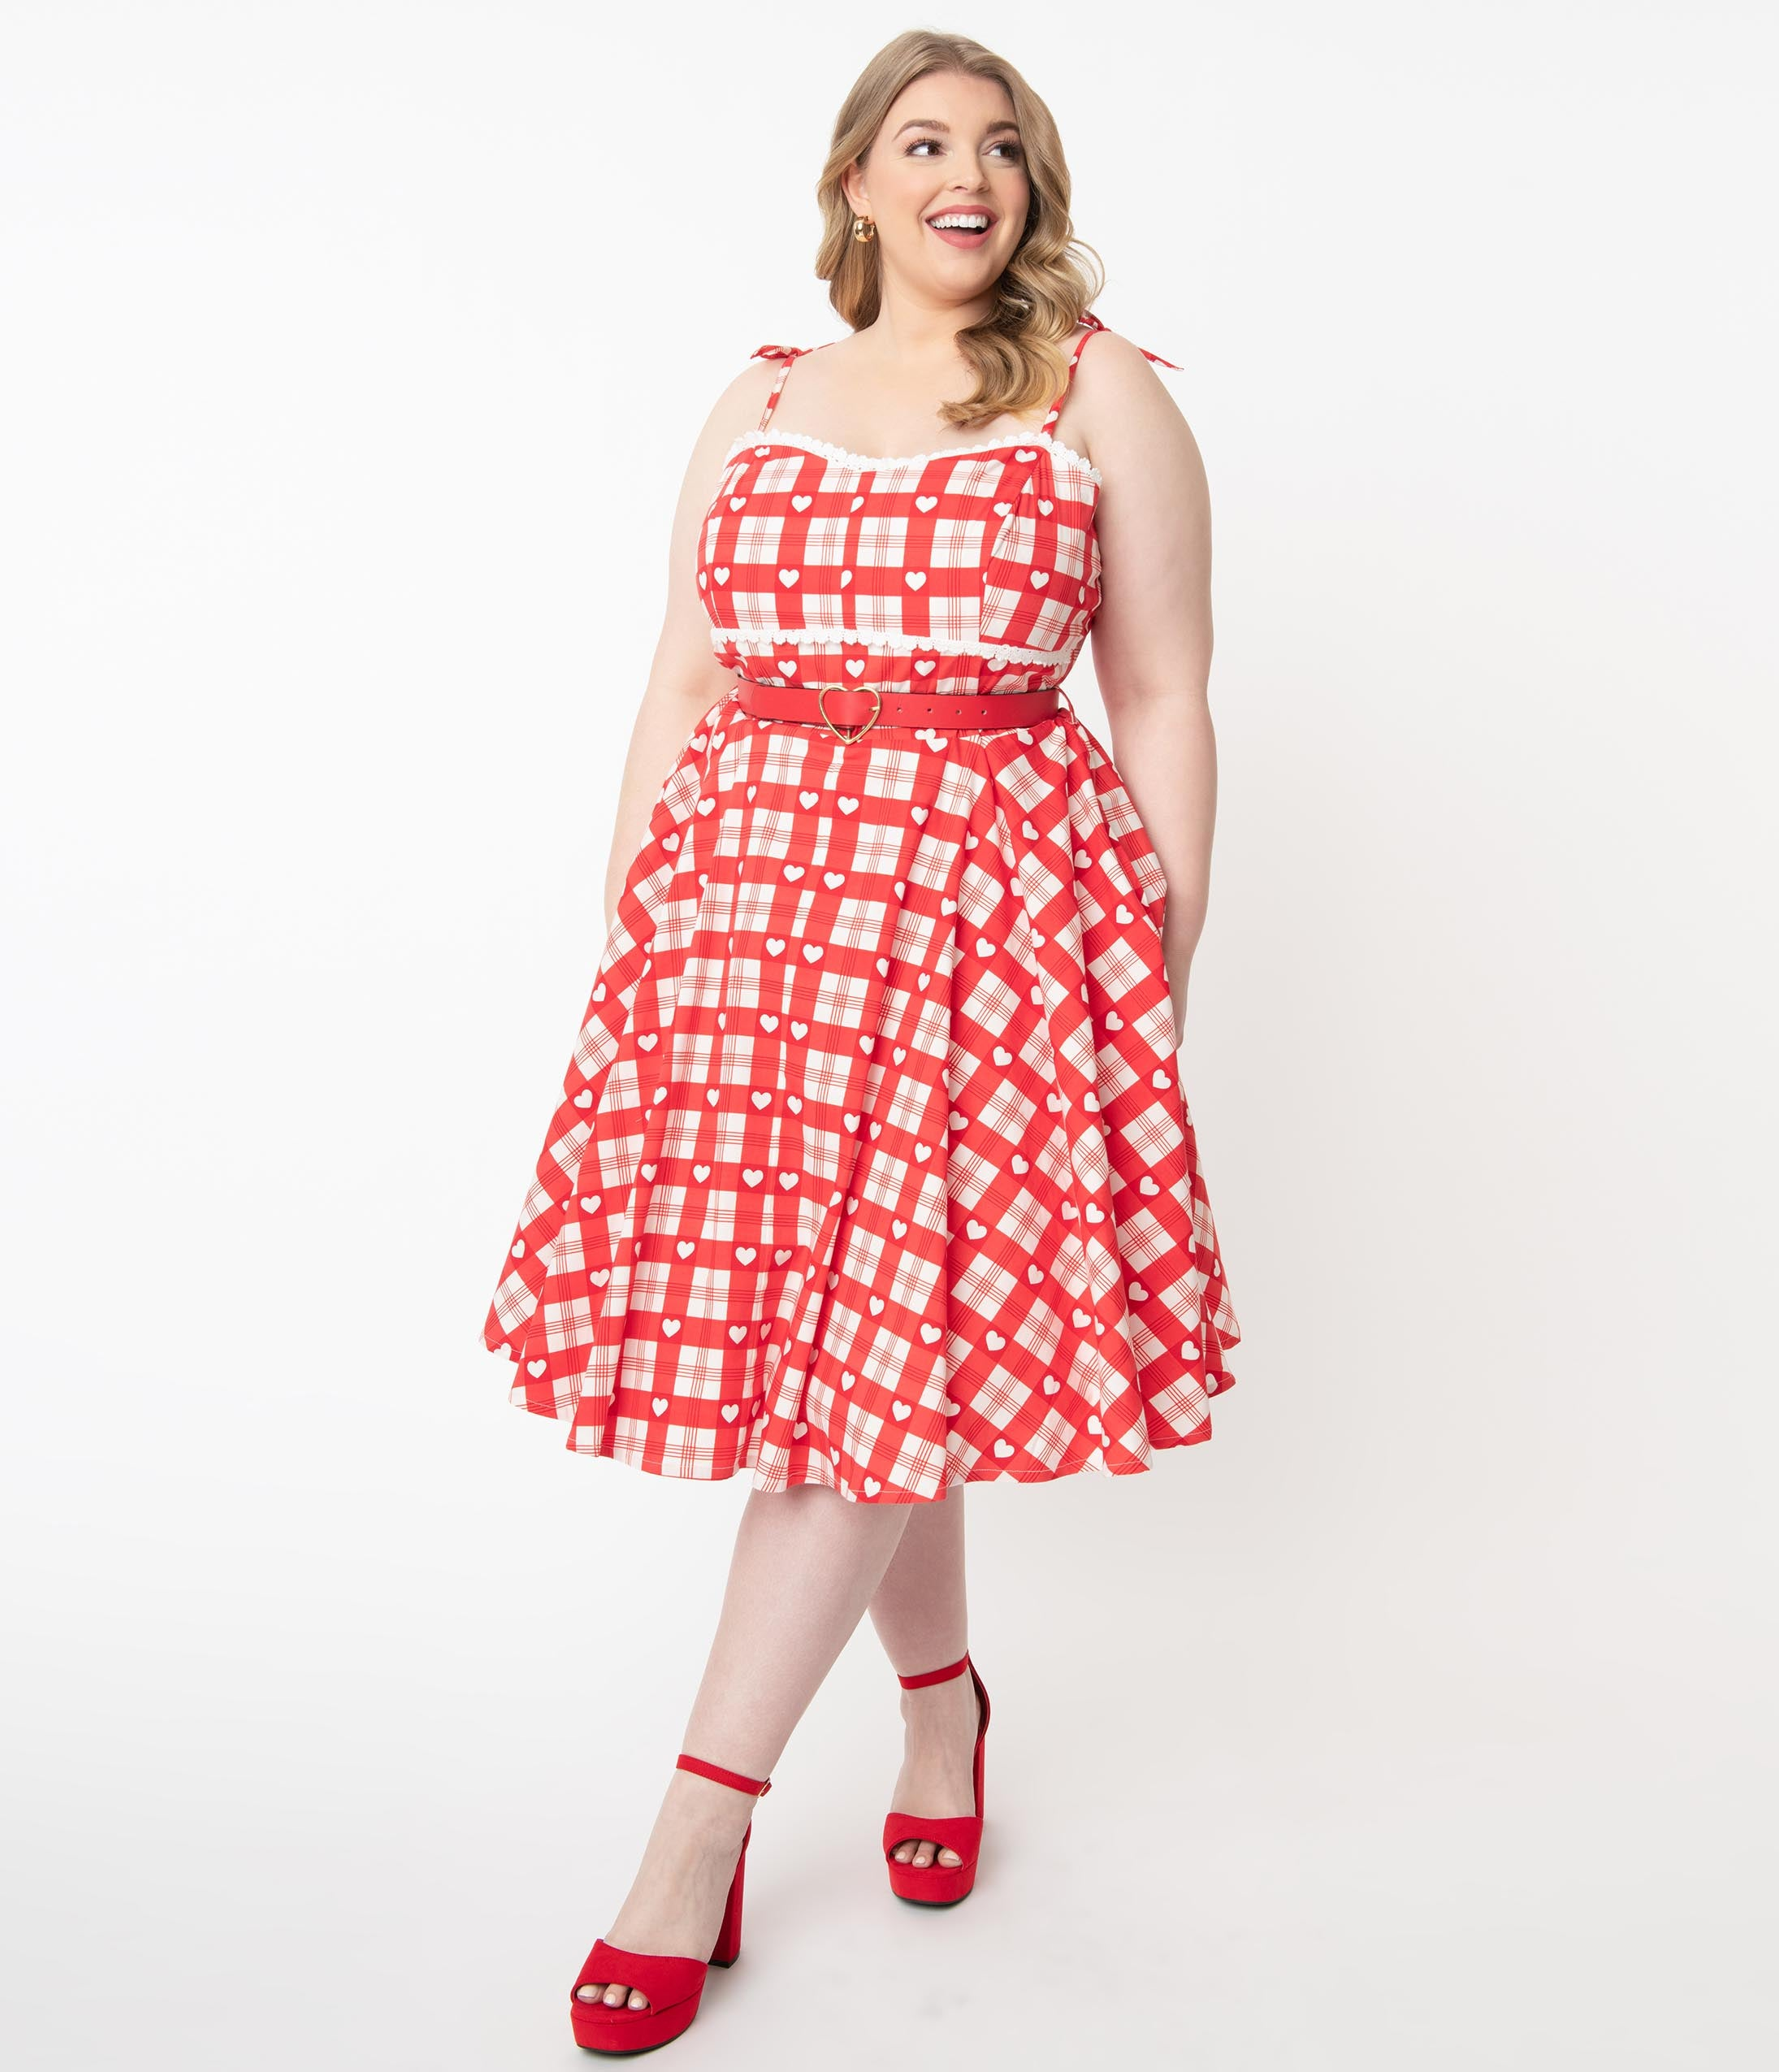 1950s Plus Size Fashion & Clothing History Plus Size 1950S Red  White Plaid Heart Print Swing Dress $88.00 AT vintagedancer.com